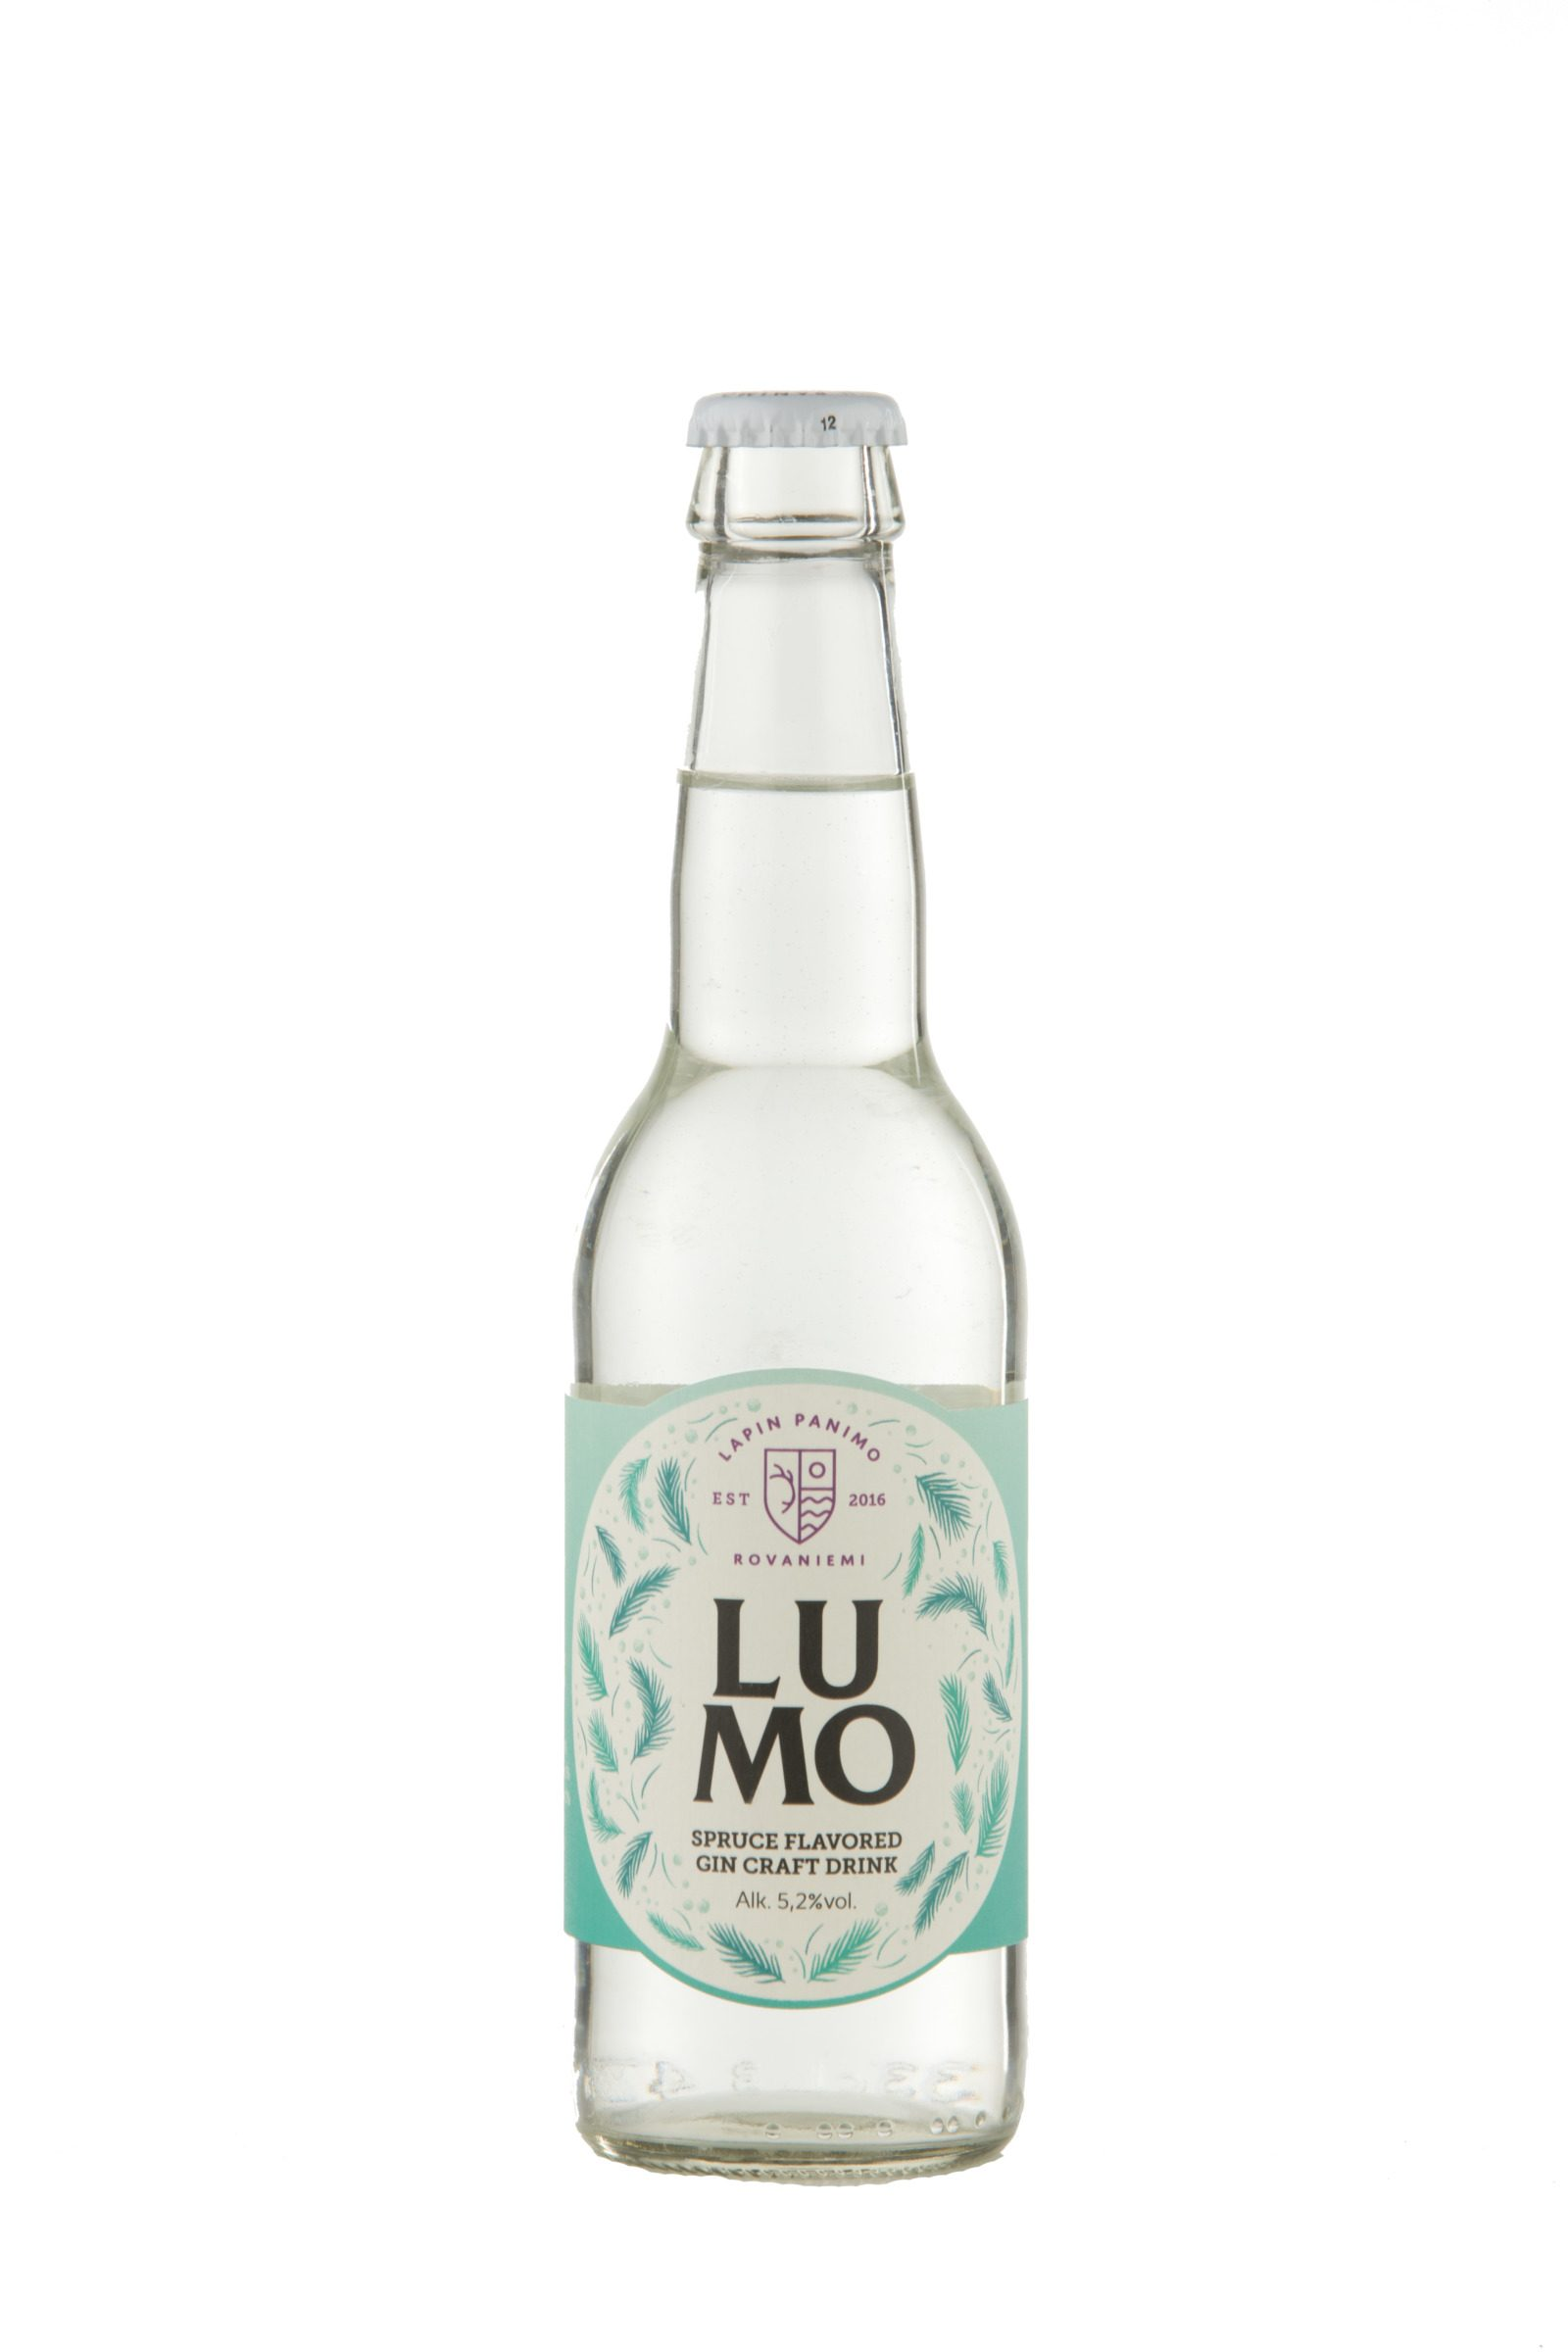 Lumo Spruce flavored GIN Craft Drink